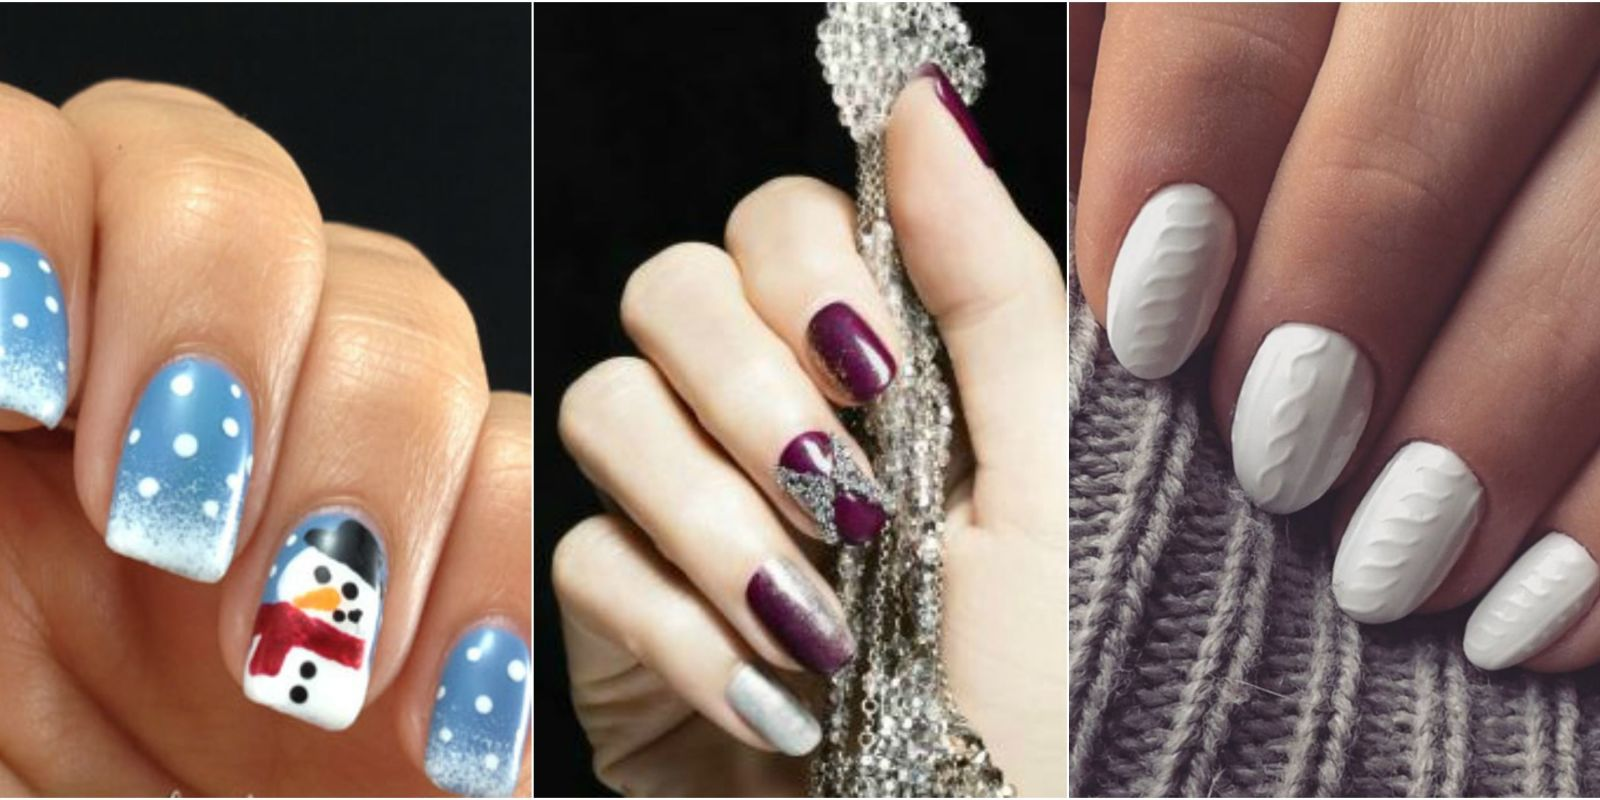 16 Winter Nail Art Ideas — Designs for New Year\'s and Holiday Nails